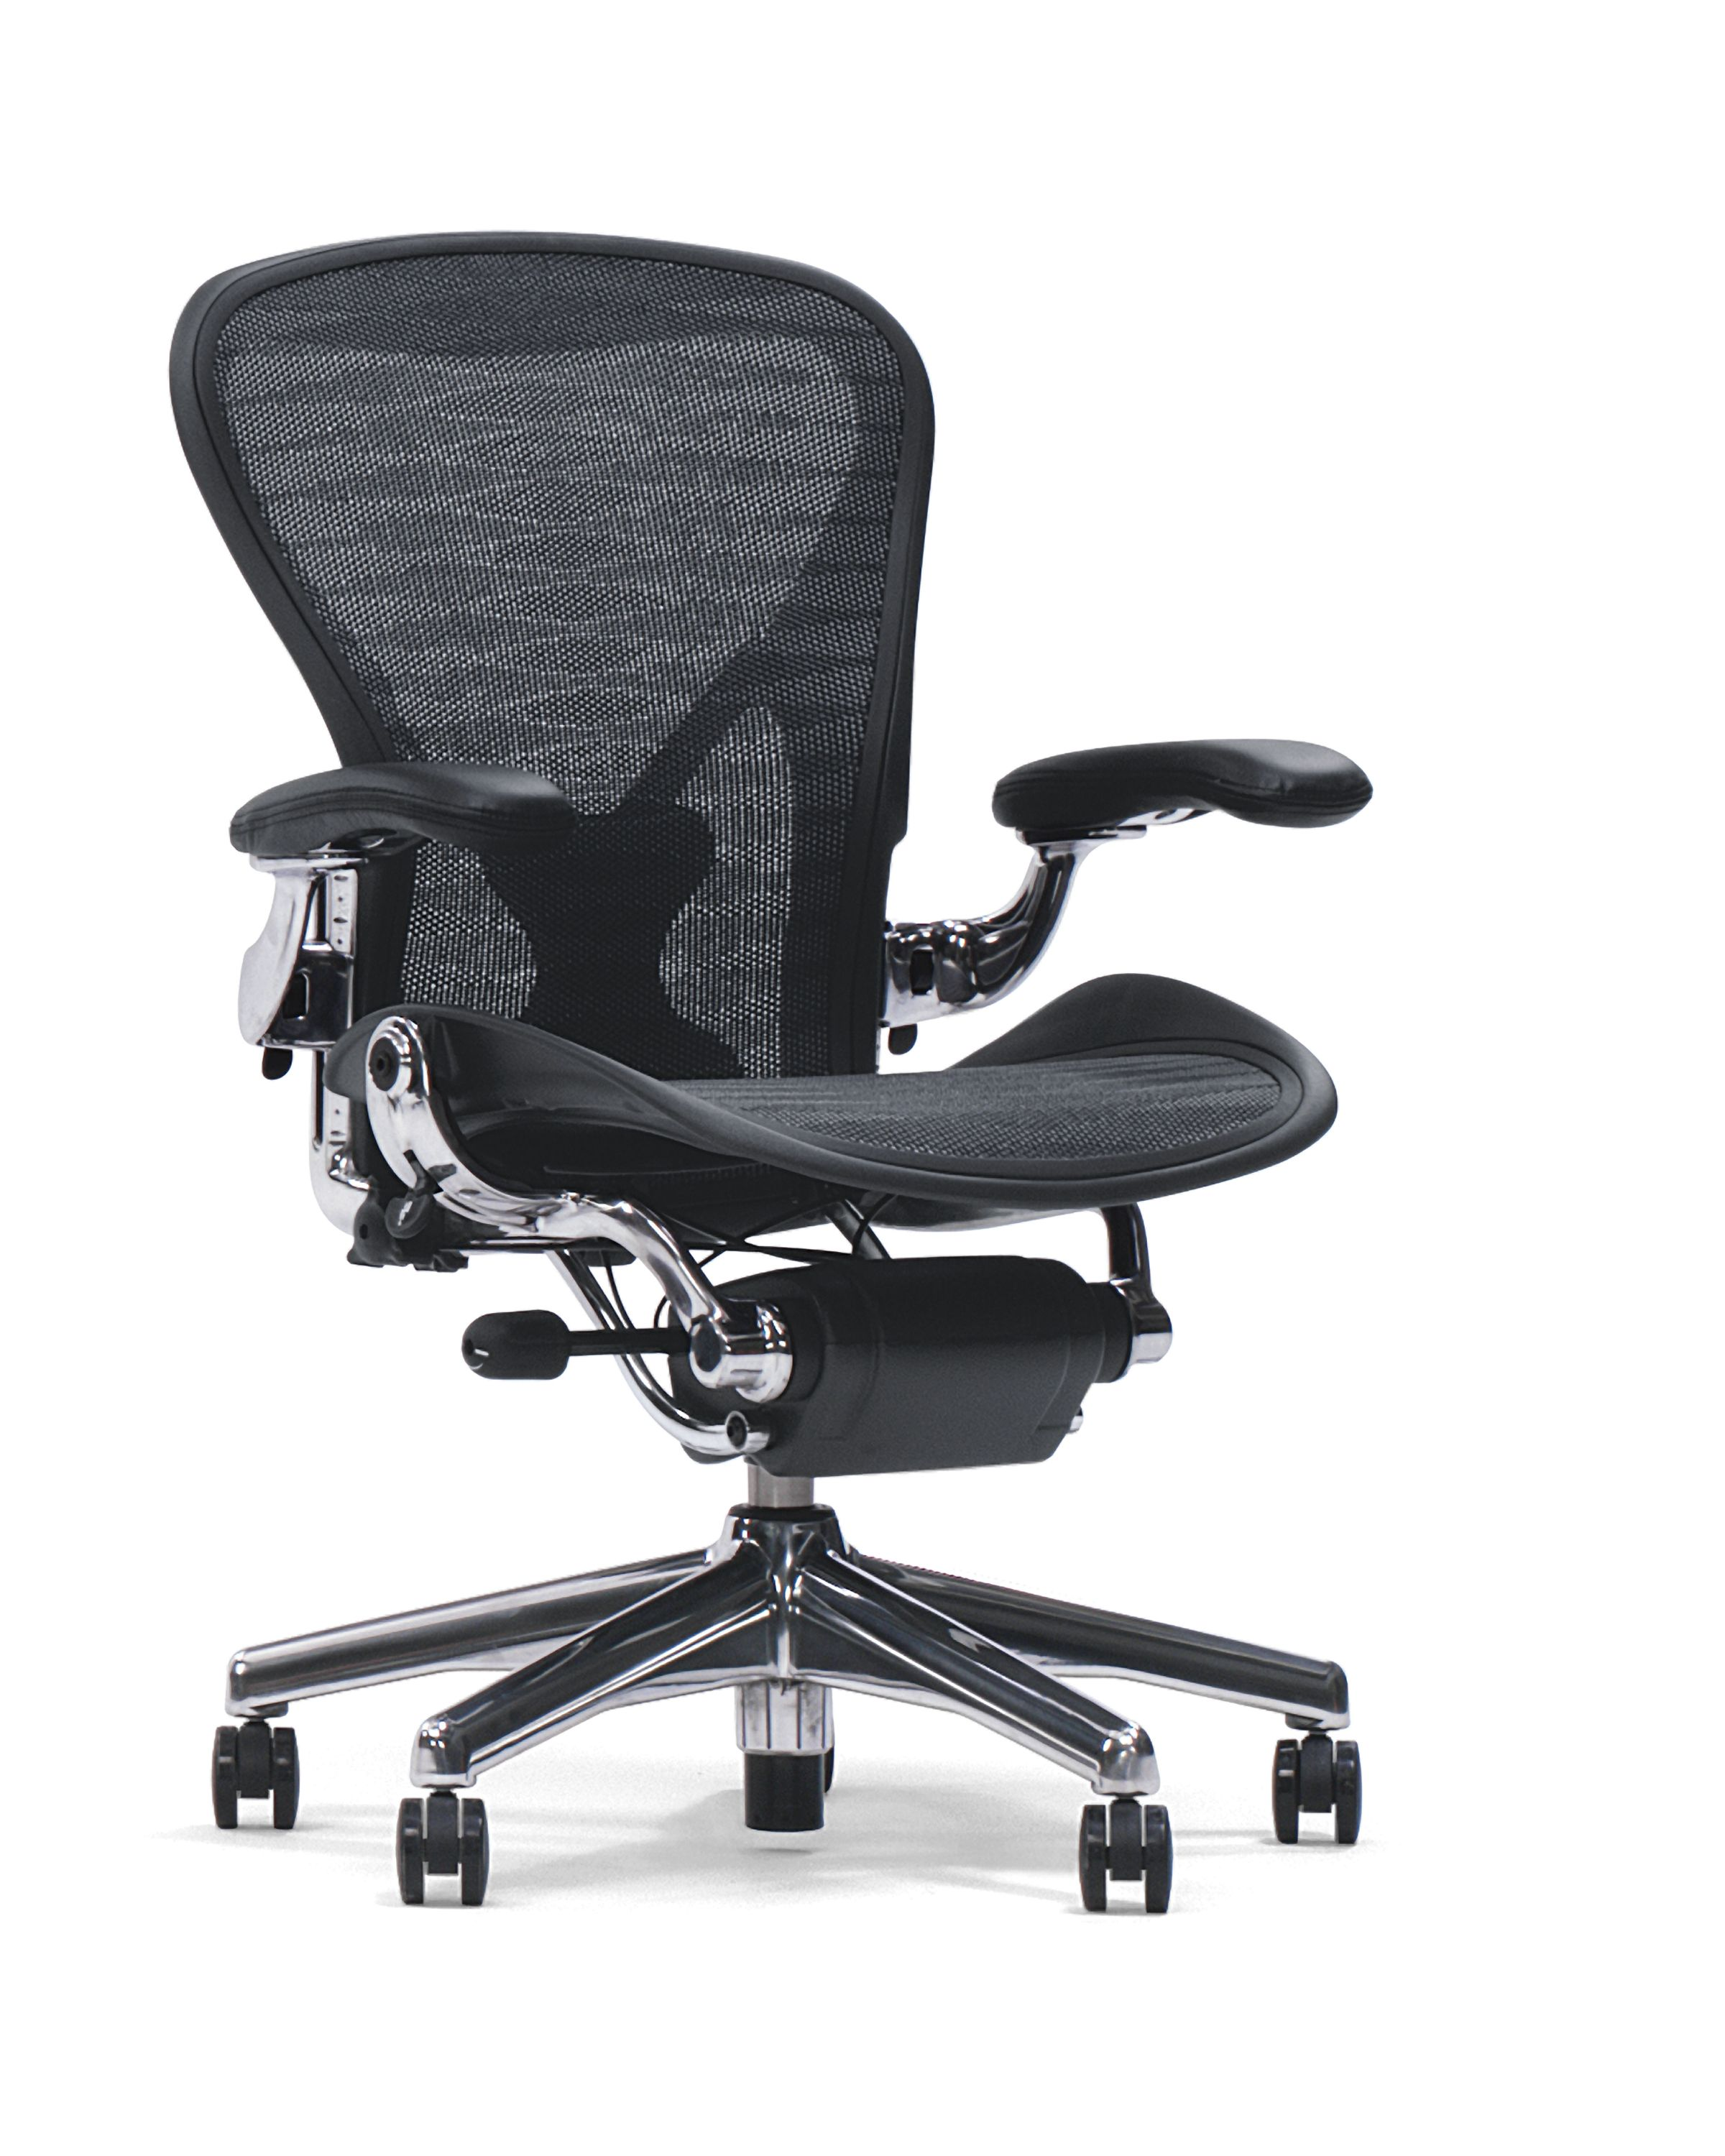 Herman Miller Chairs Houston Herman Miller Chairs Houston With